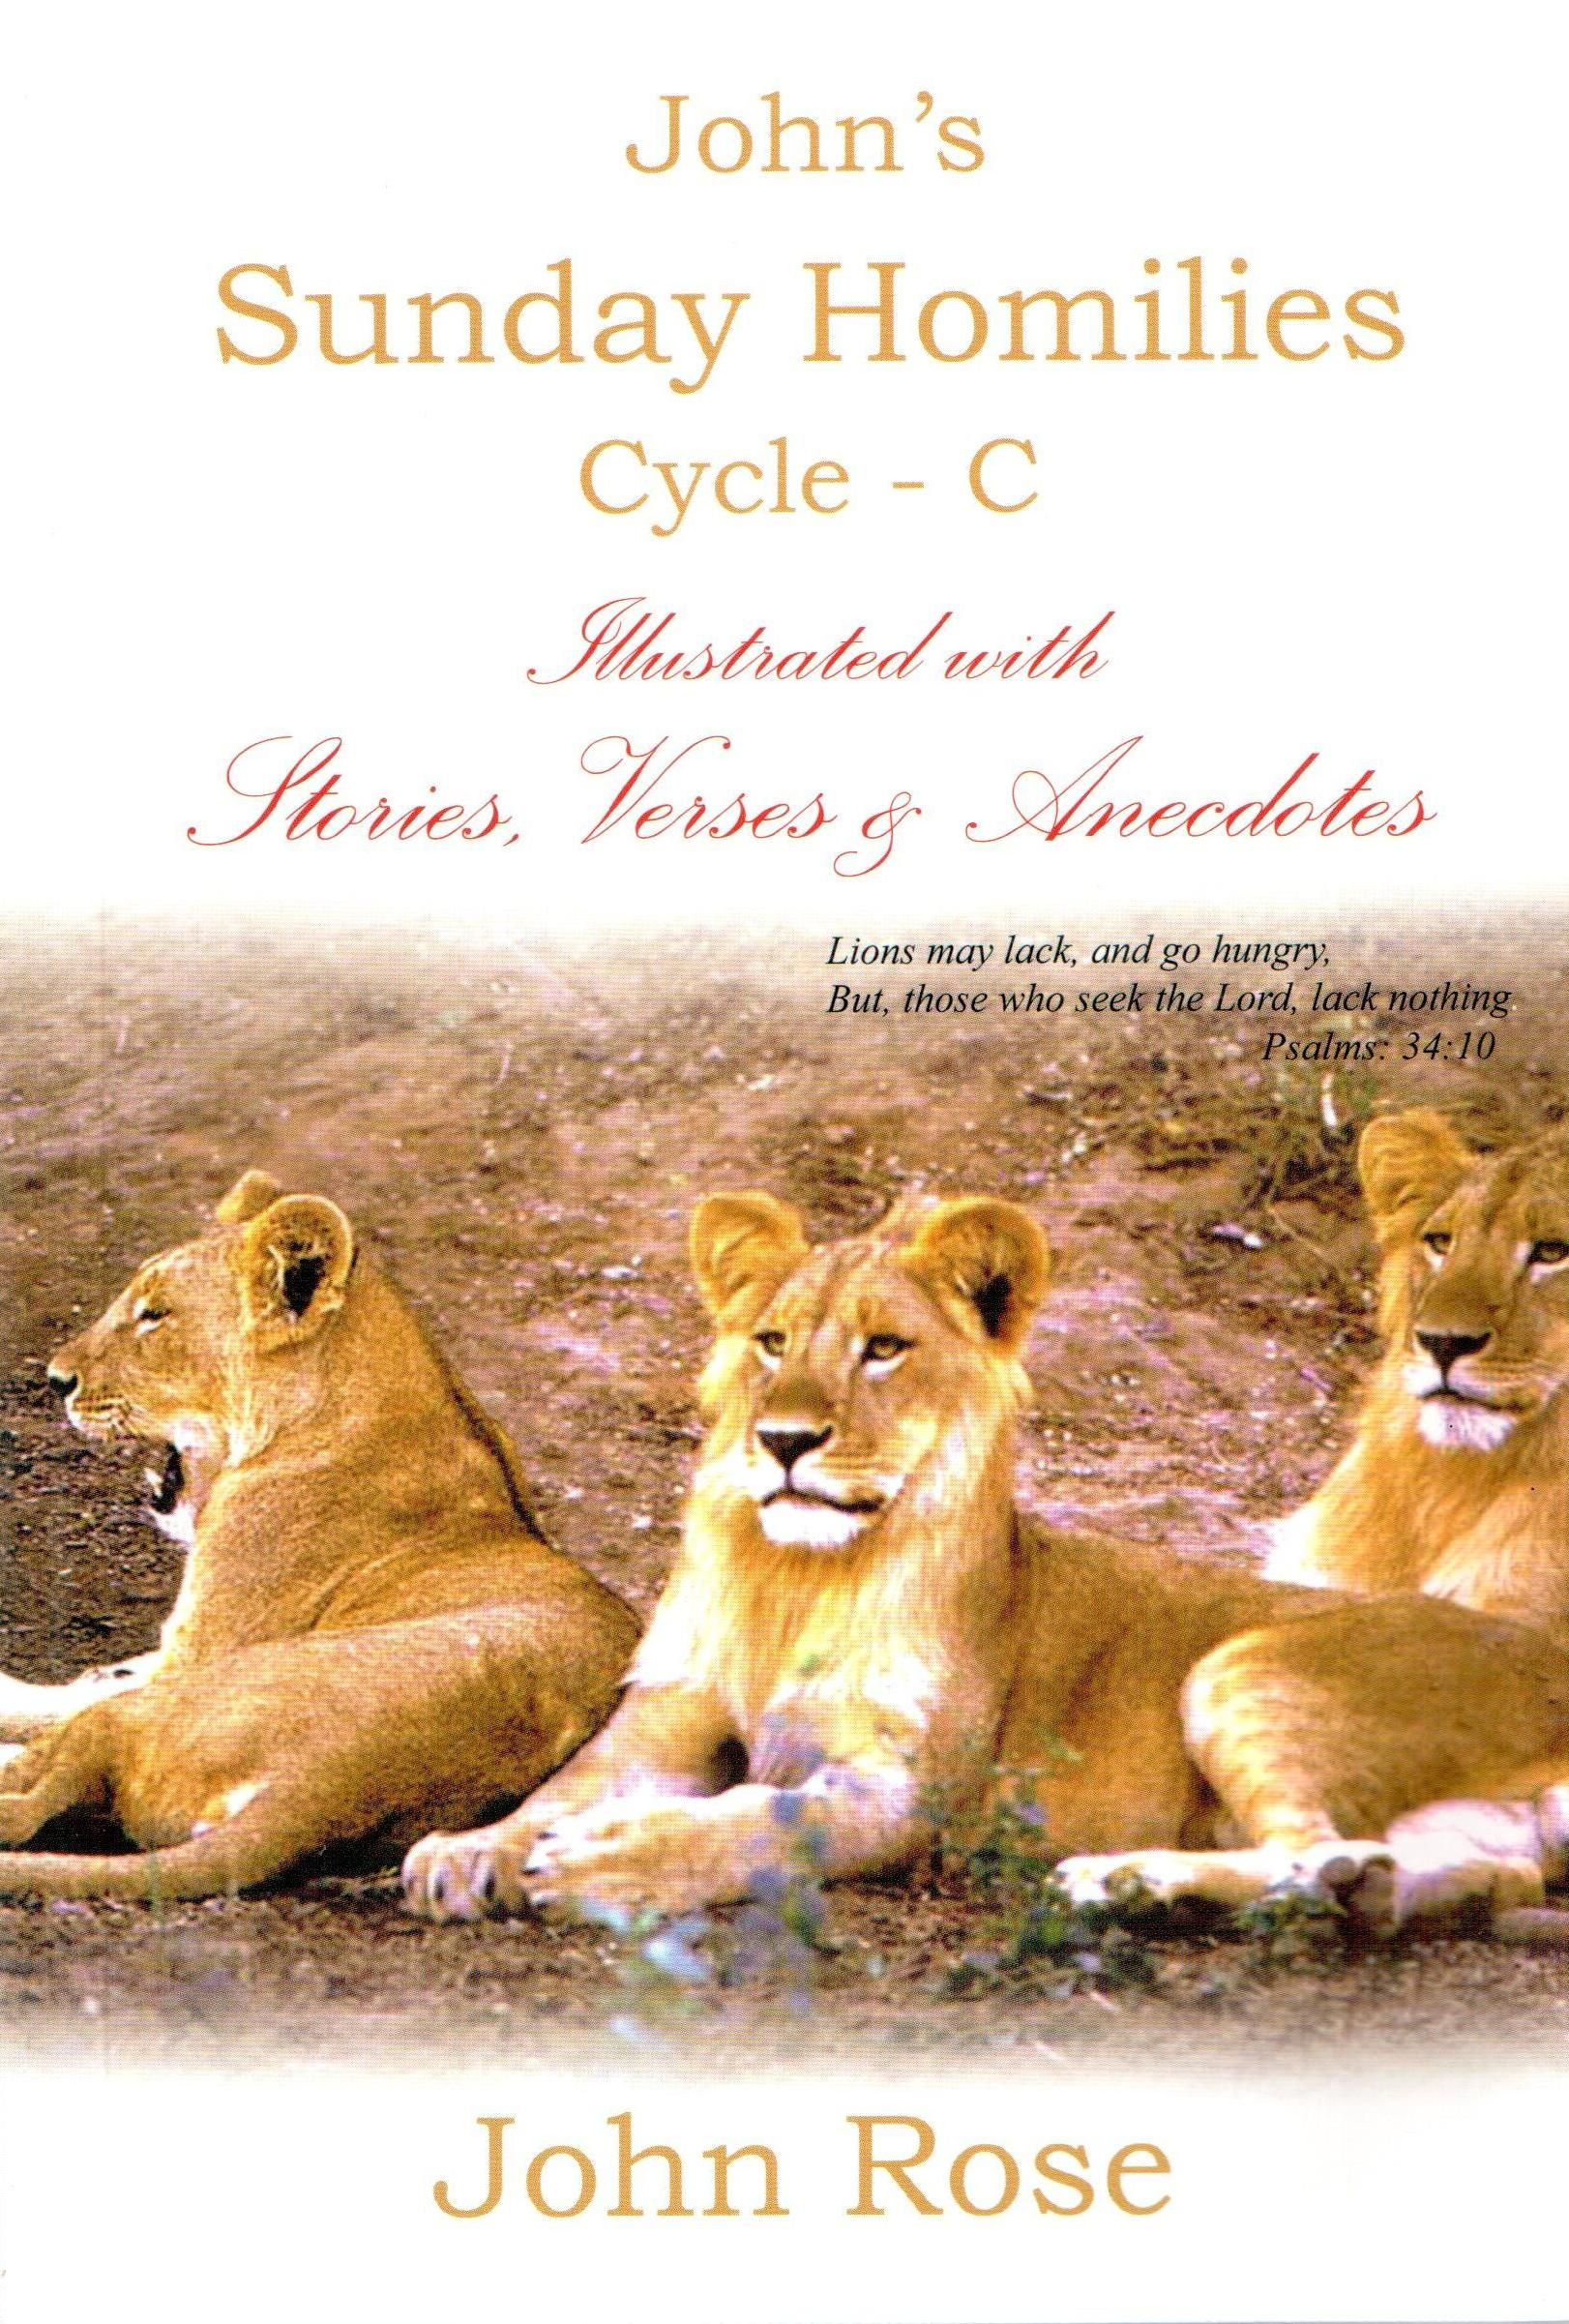 Sunday Homilies Cycle- C, Illustrated with Stories, Verses